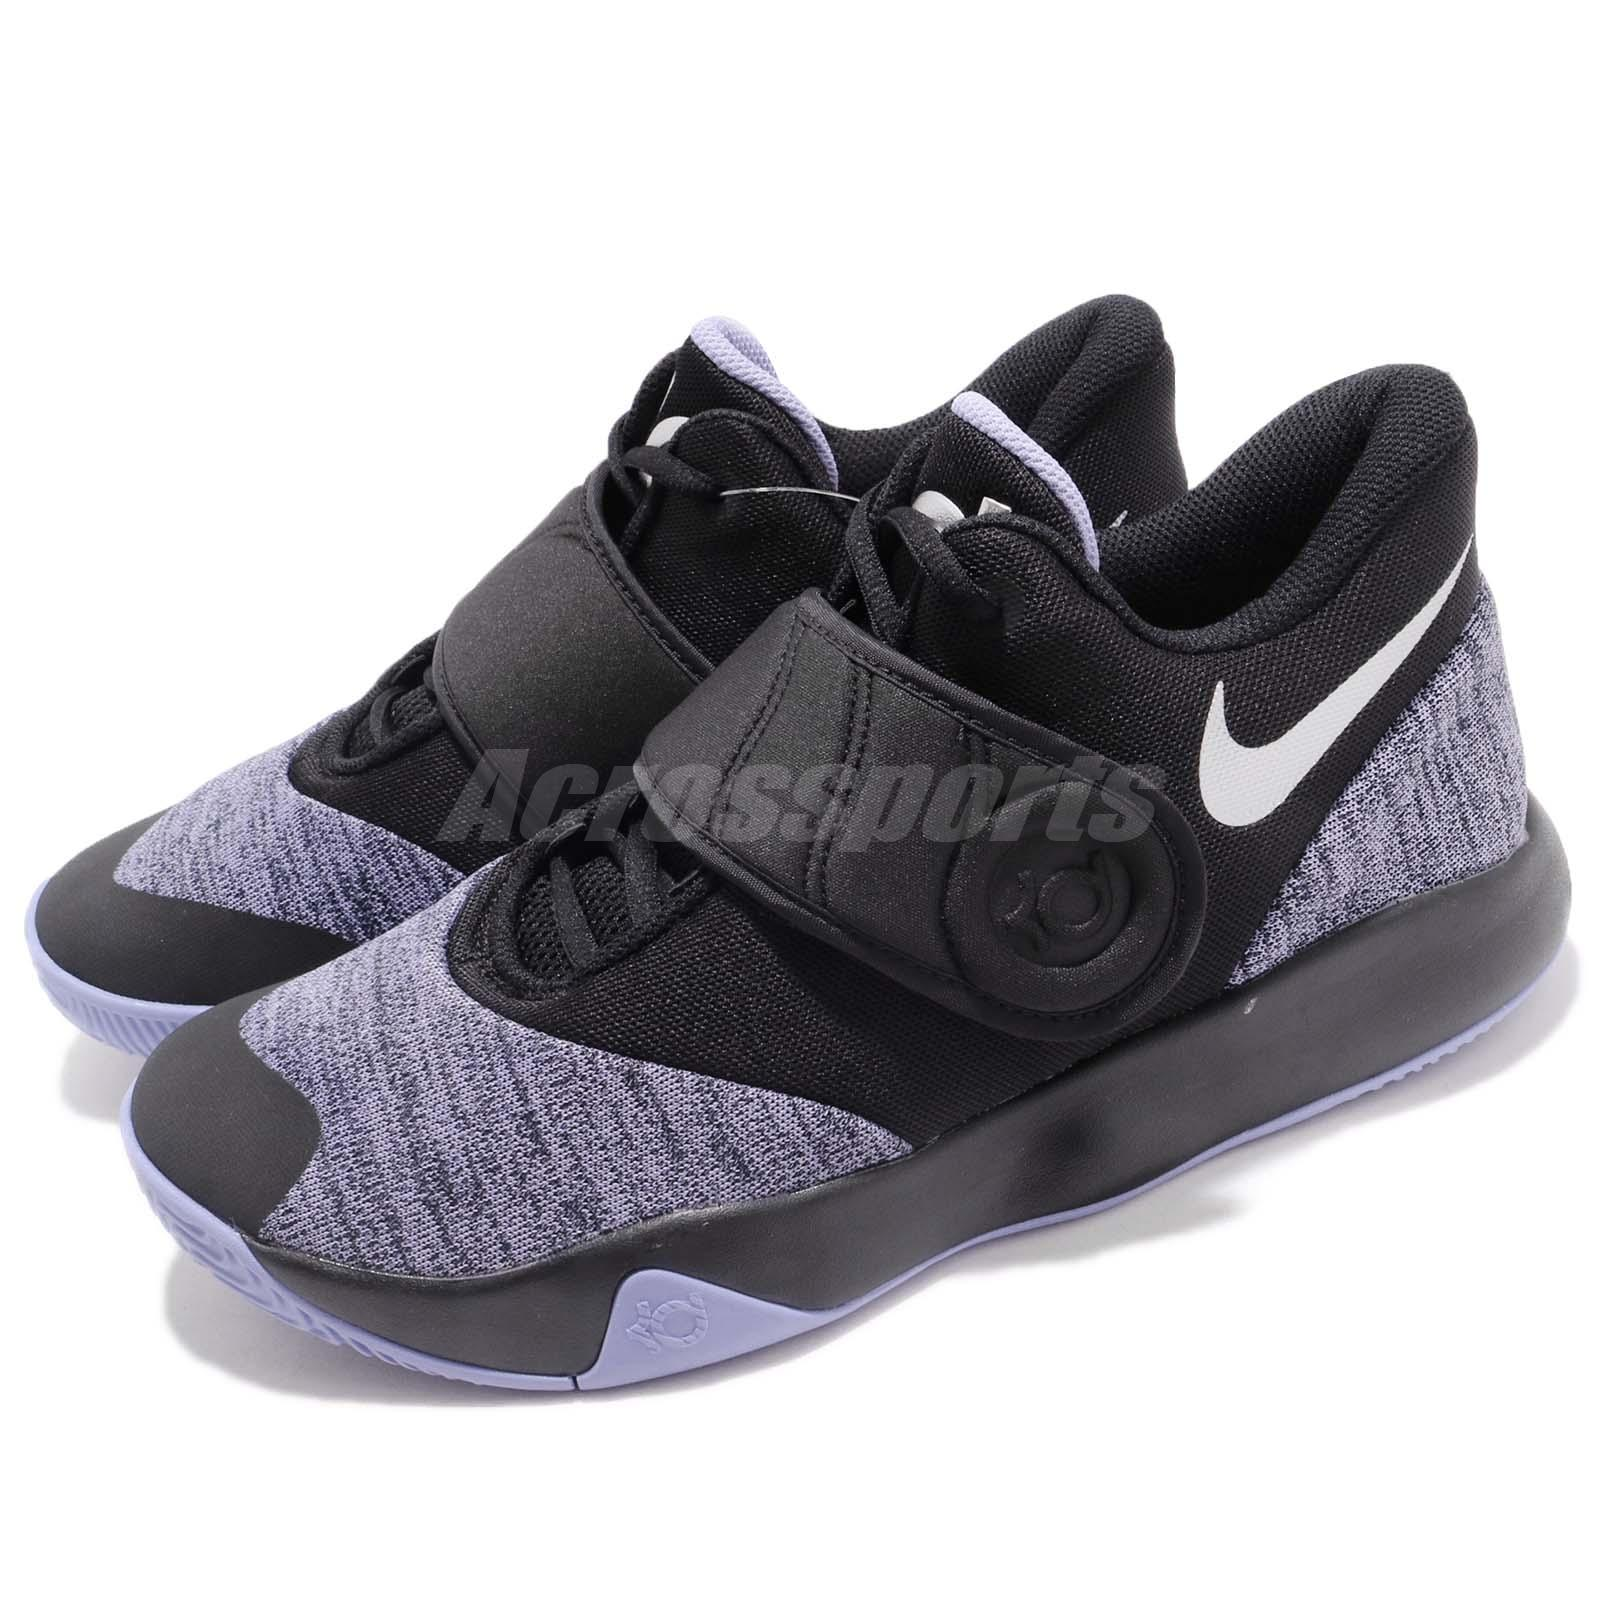 0c9cafeef0f5 Details about Nike KD Trey 5 VI EP 6 Kevin Durant Black Silver Men Basketball  Shoes AA7070-004